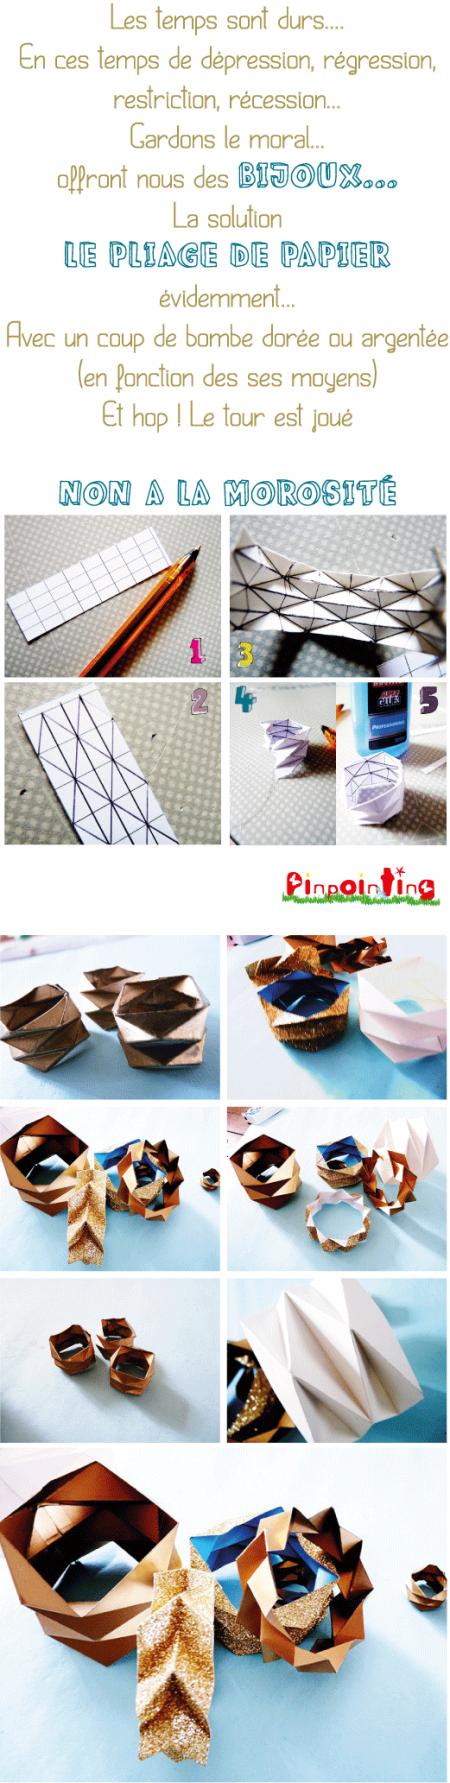 bijoux, papier, pliage, folding, origami, pinpointing